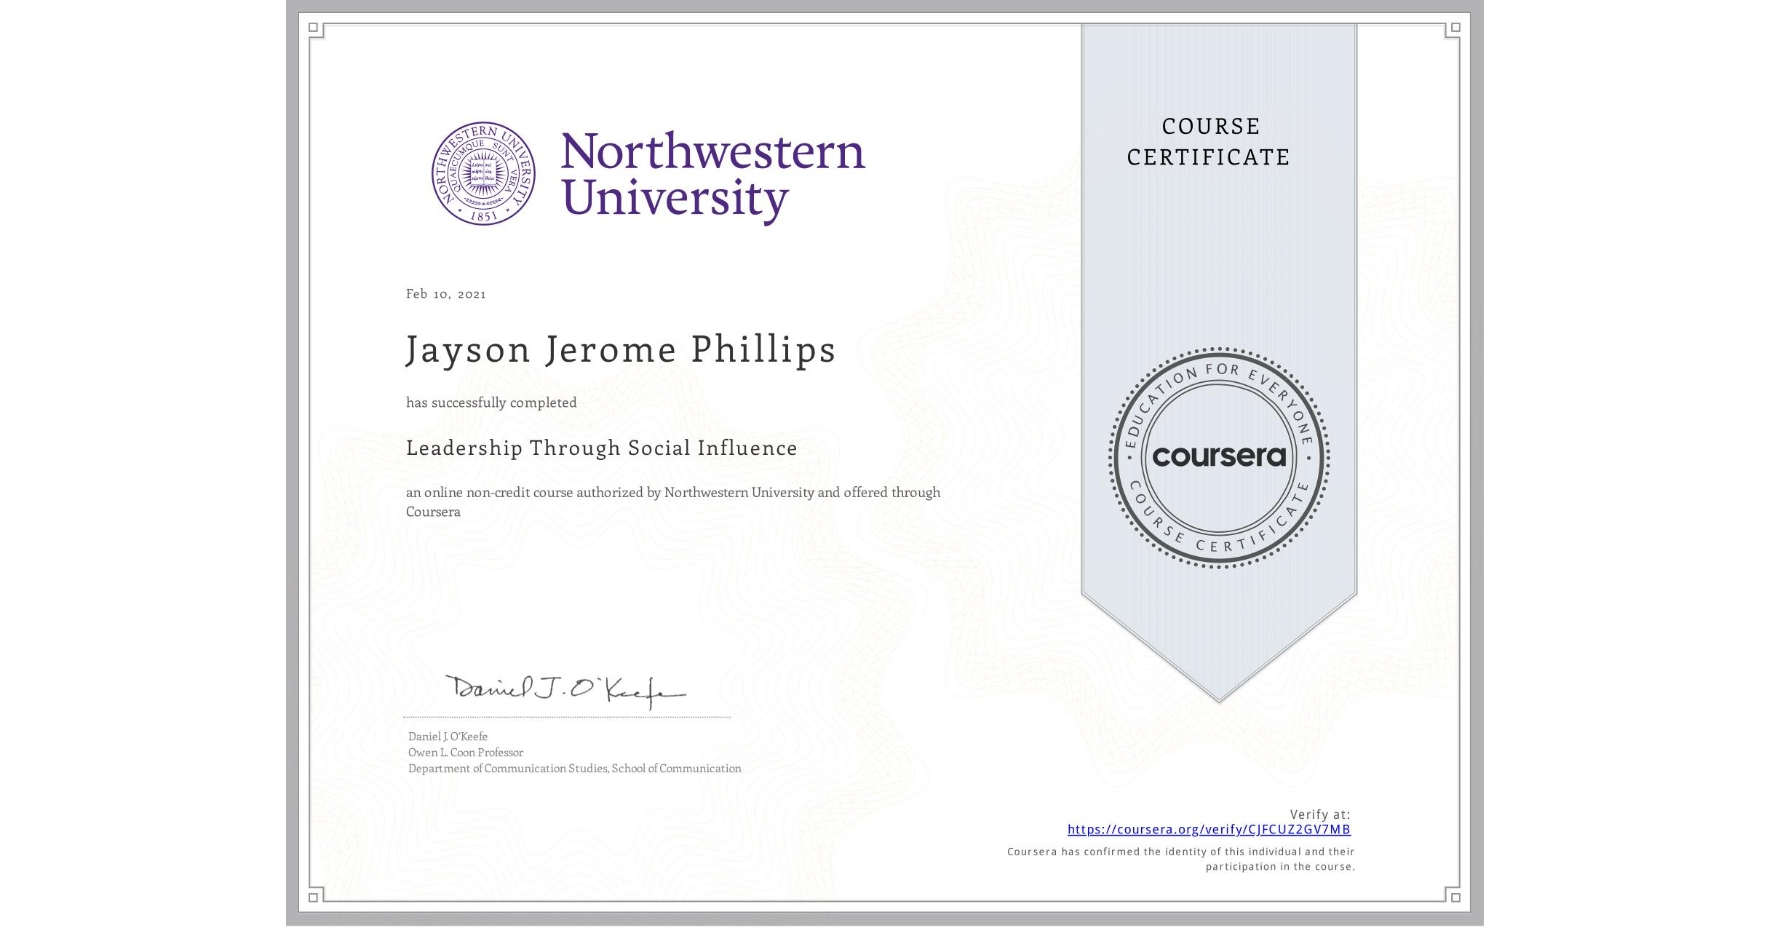 View certificate for Jayson Jerome Phillips, Leadership Through Social Influence, an online non-credit course authorized by Northwestern University and offered through Coursera